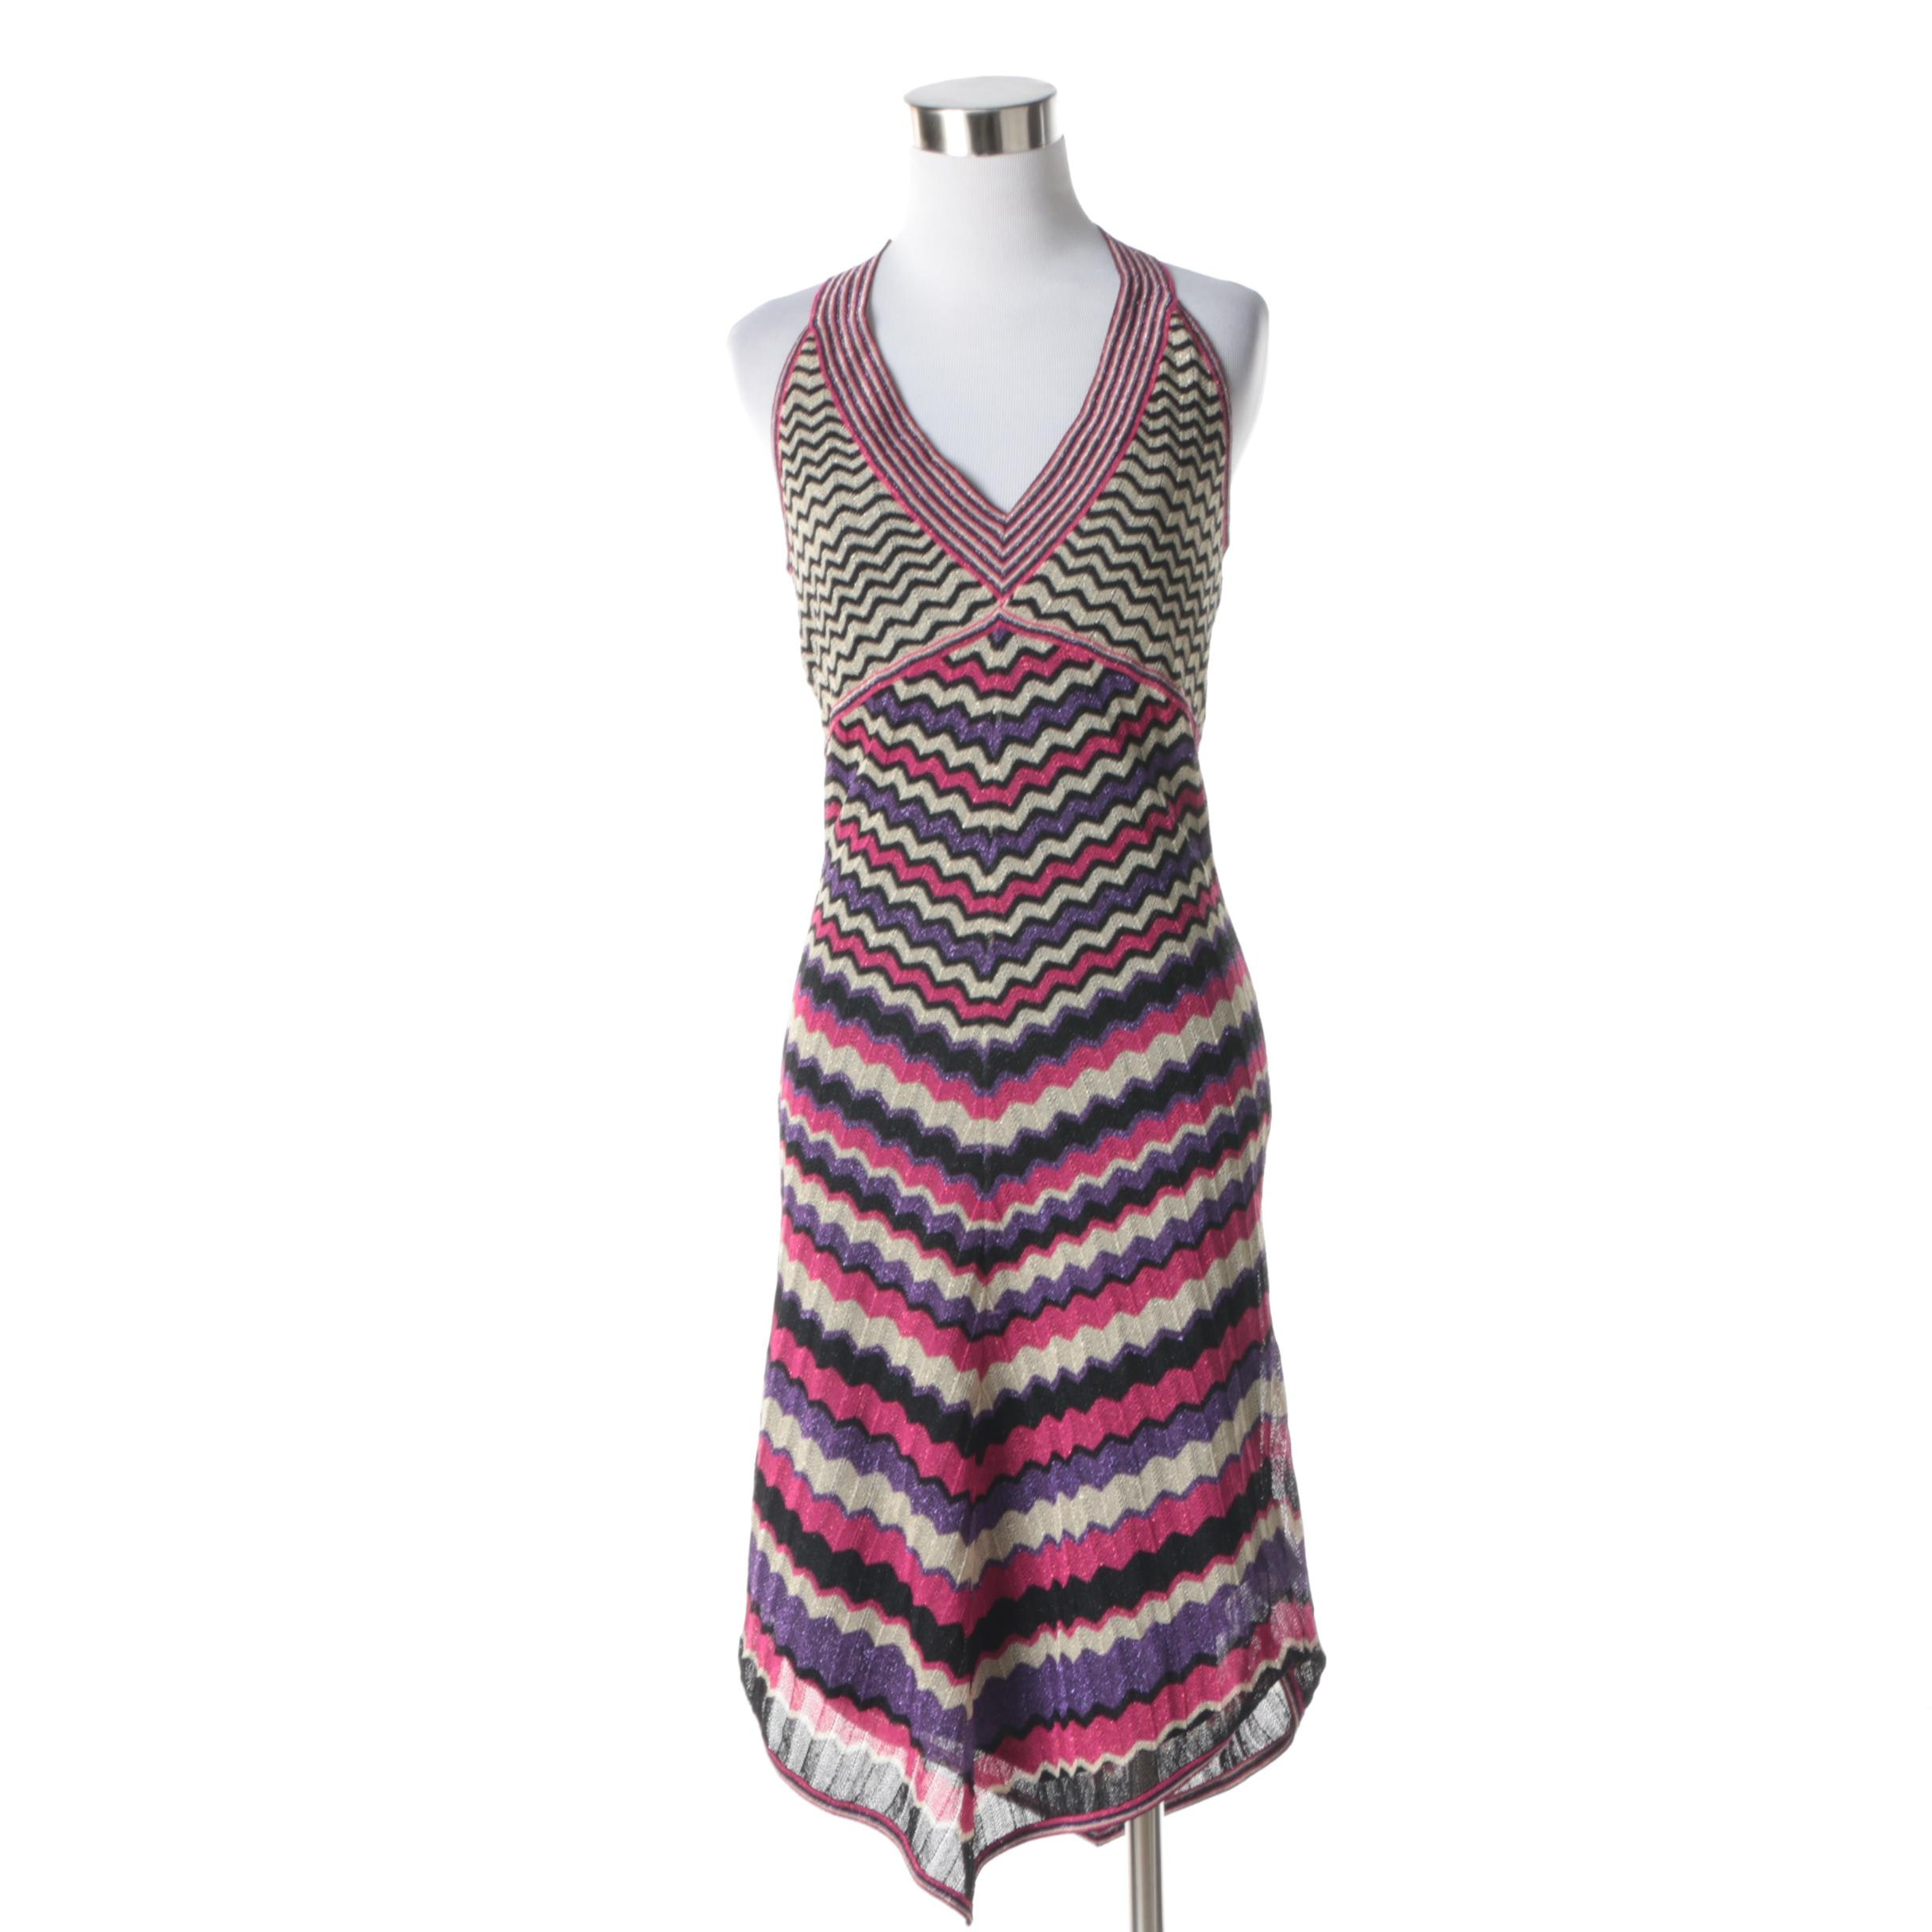 Karen Millen Pink, Black and Purple Chevron Knit Halter Dress